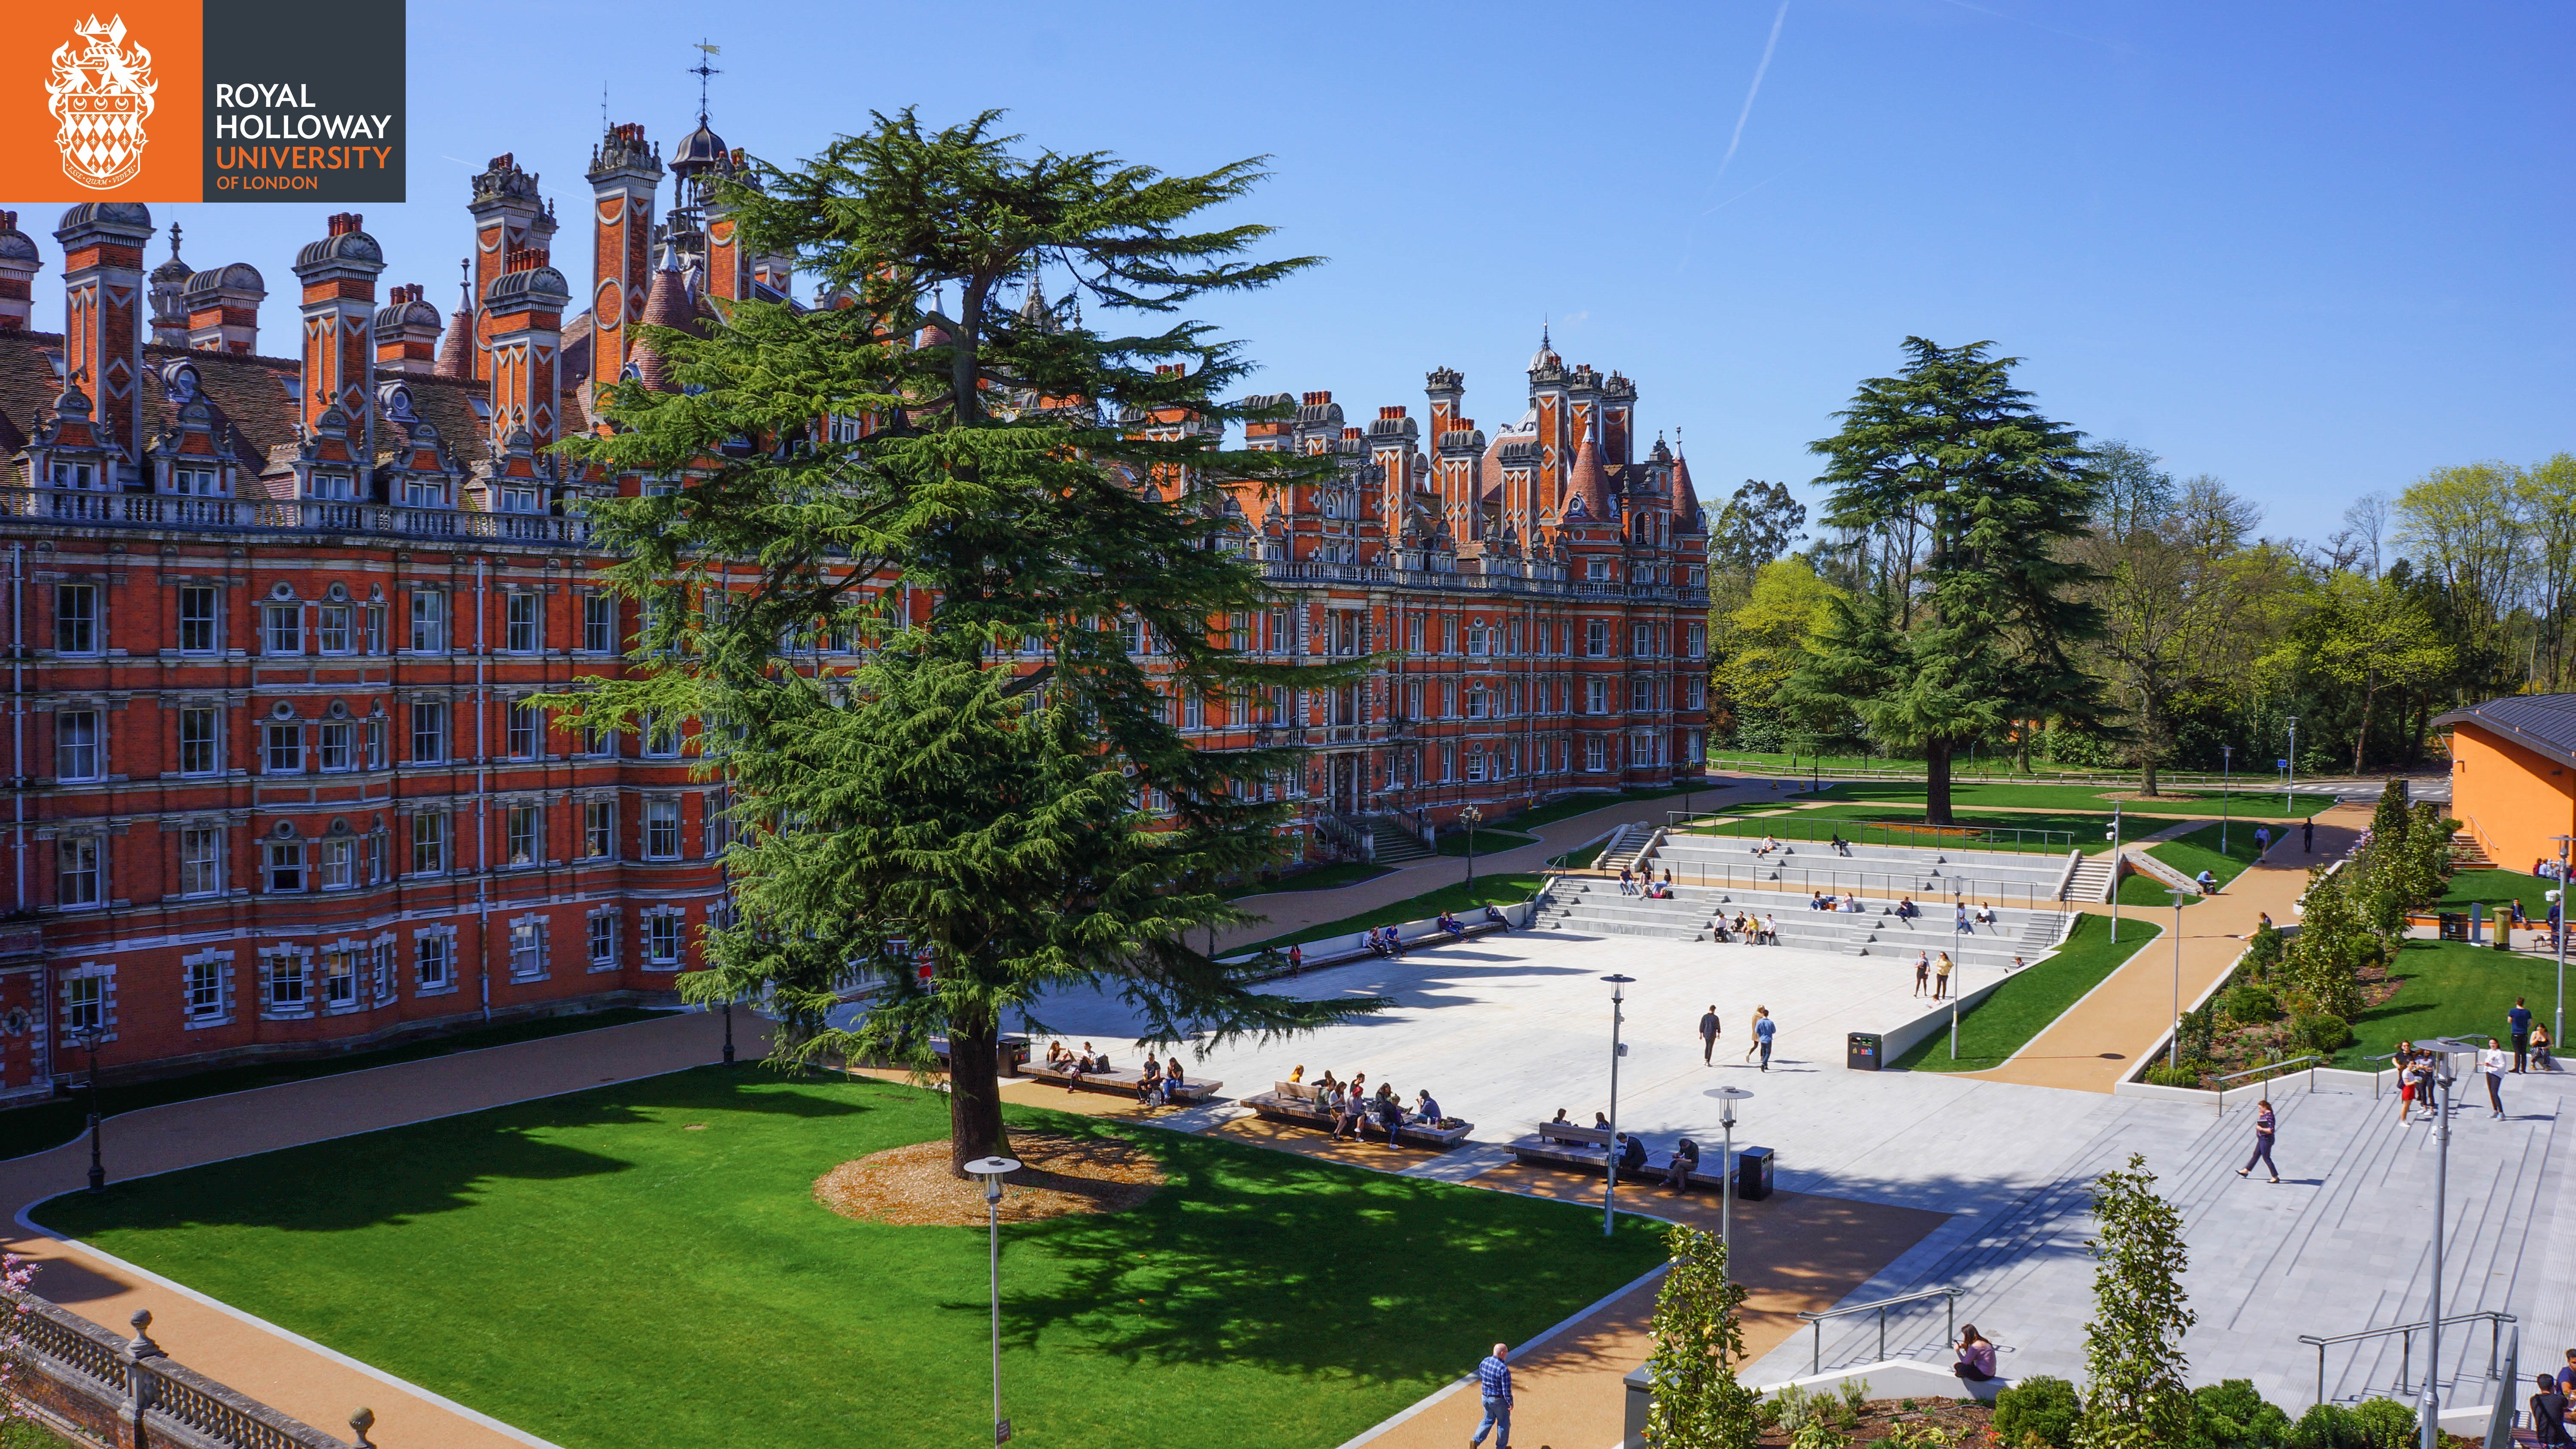 Royal Holloway Founders Square Image